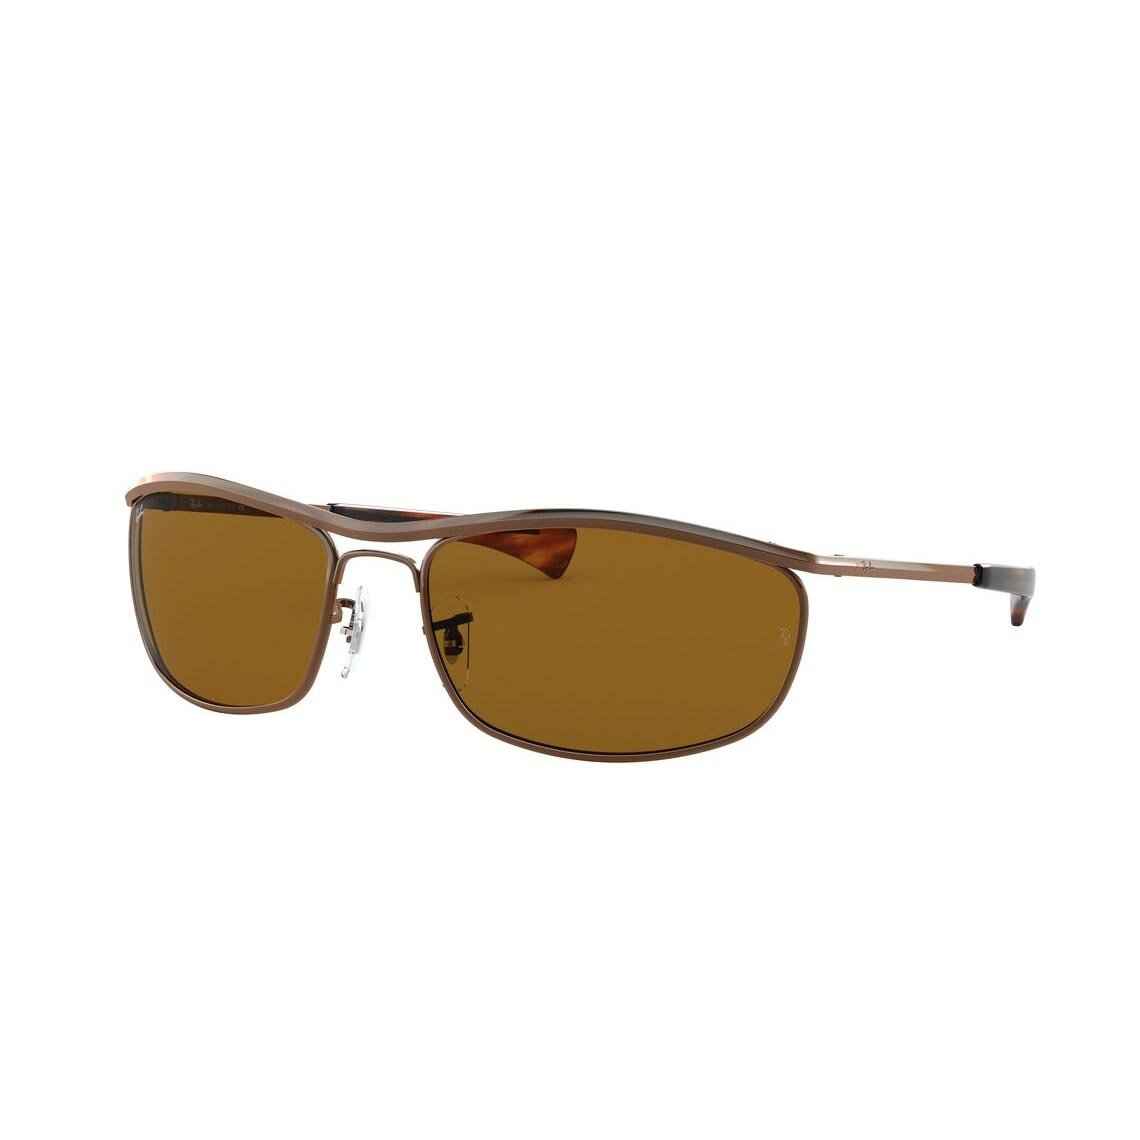 Ray-Ban Olympian I Deluxe RB3119M 918133 6218